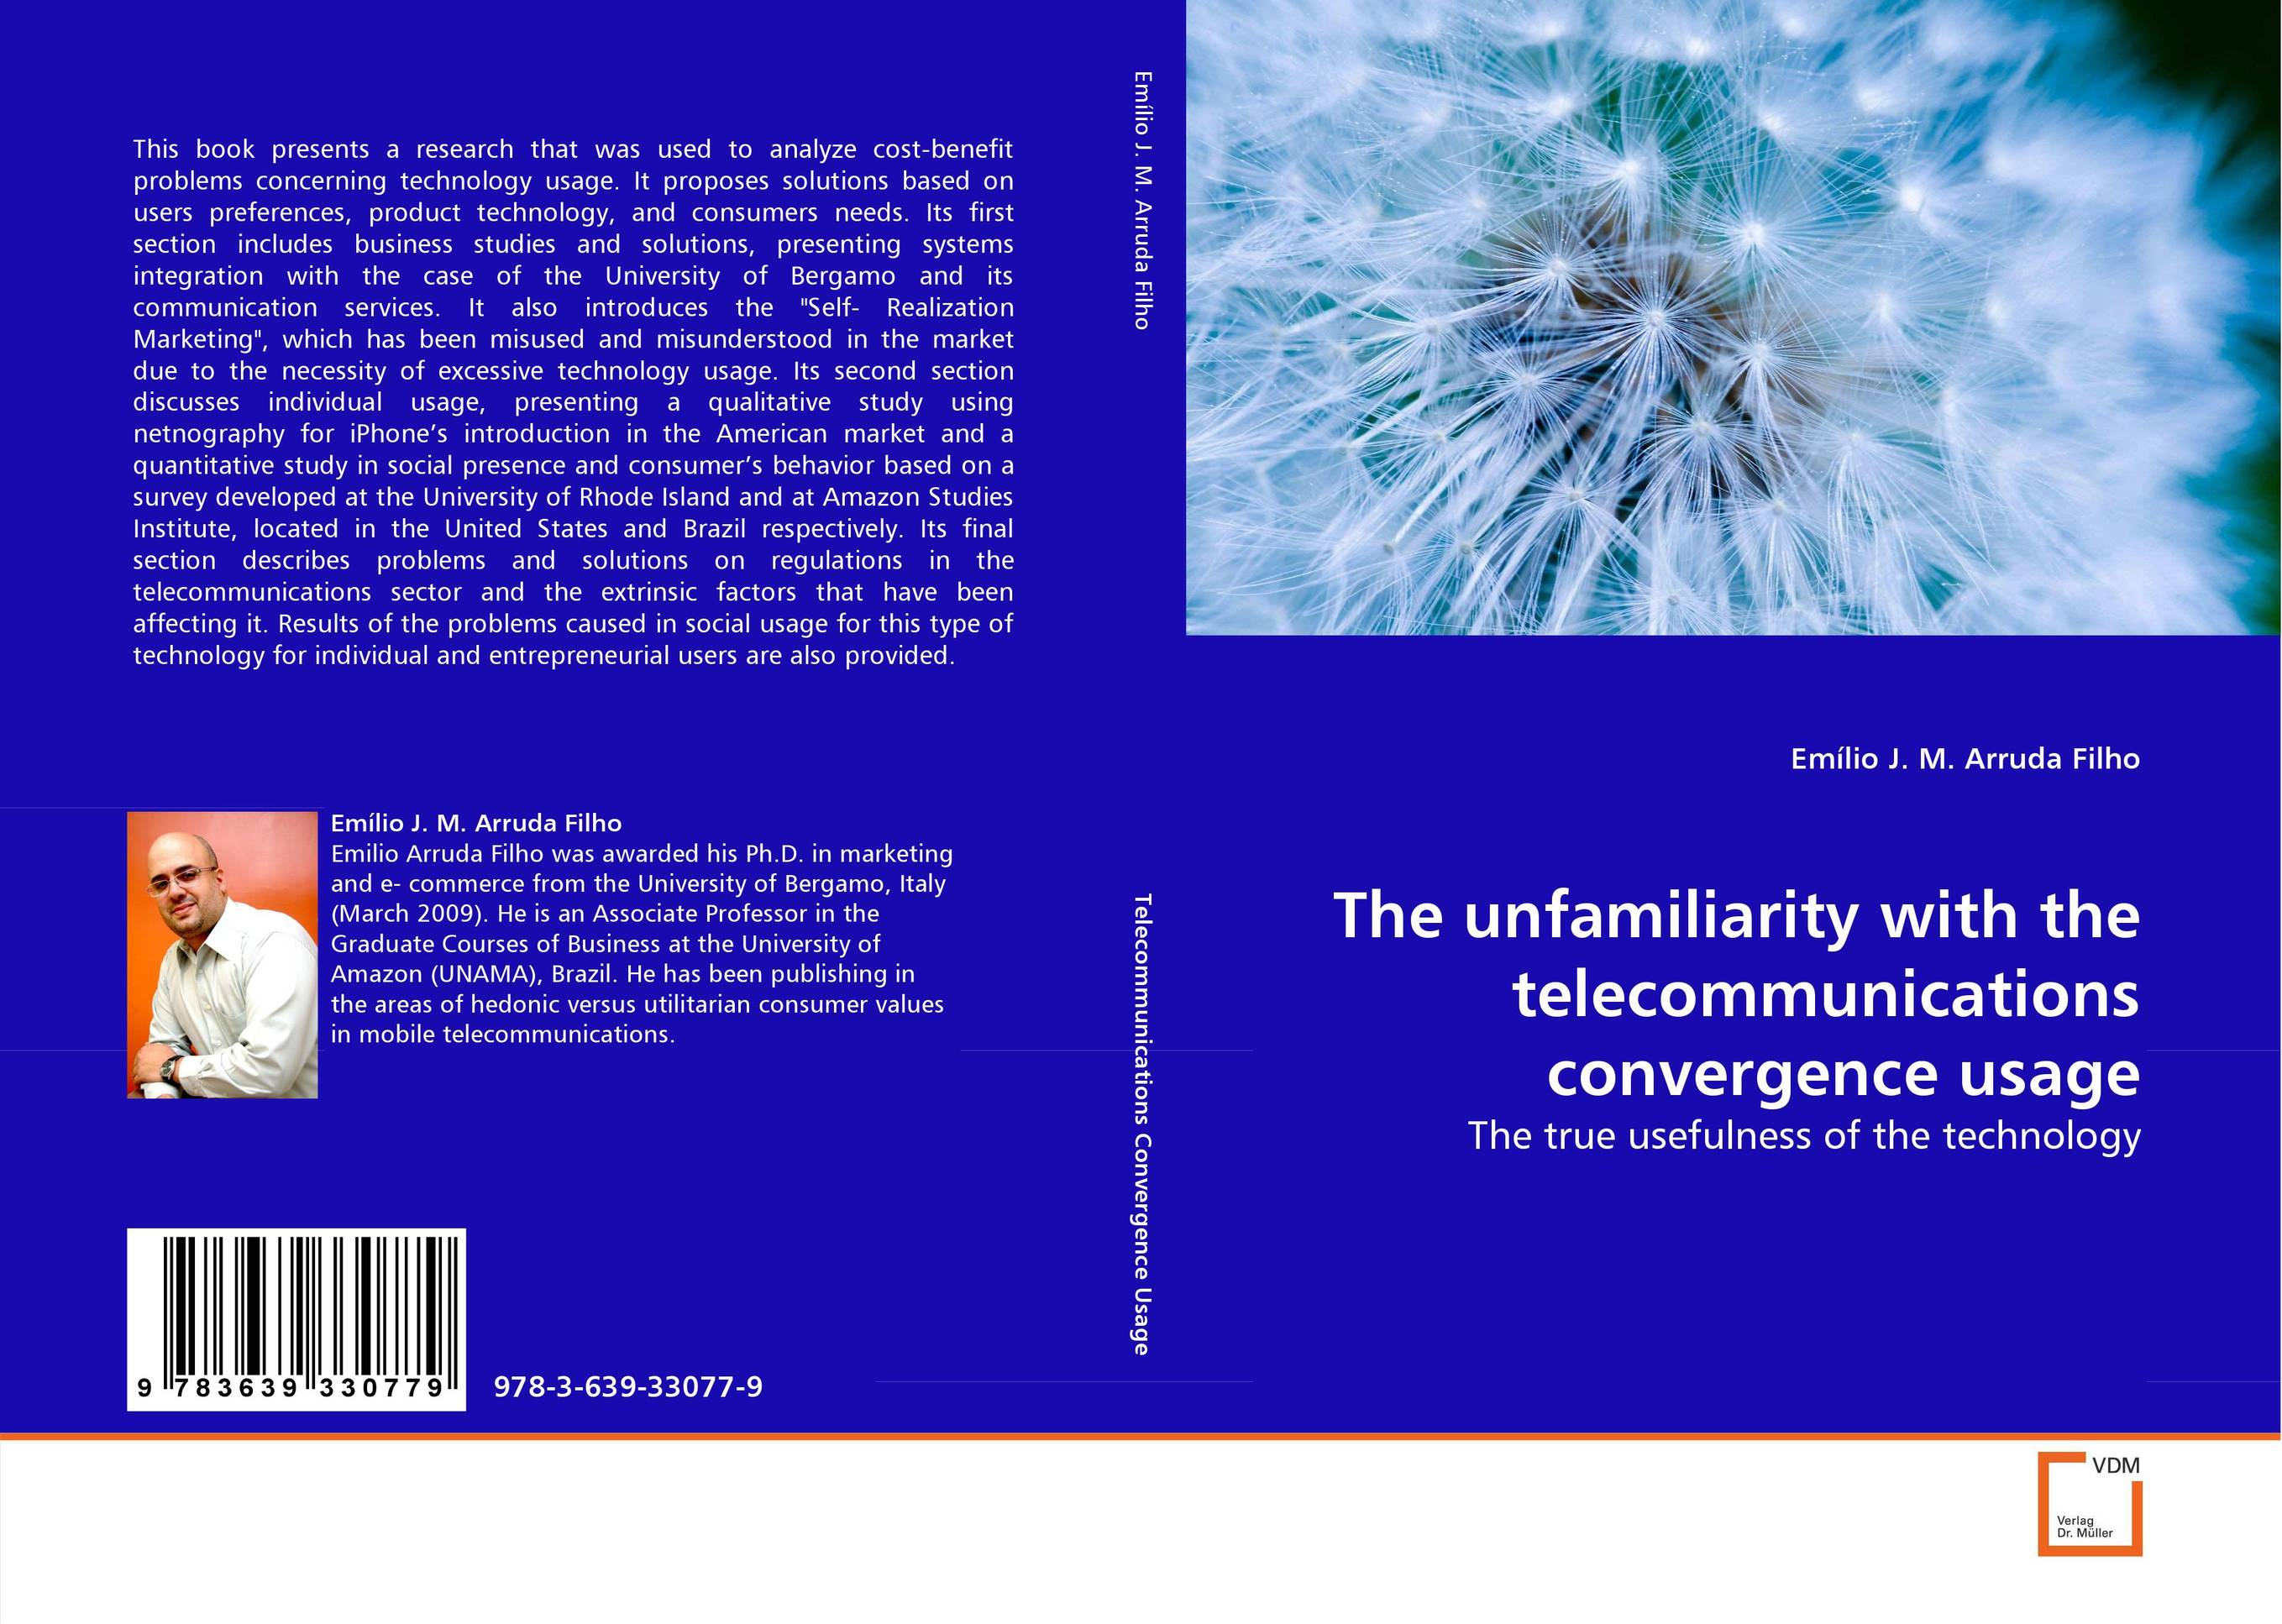 The unfamiliarity with the telecommunications convergence usage marc lane j the mission driven venture business solutions to the world s most vexing social problems